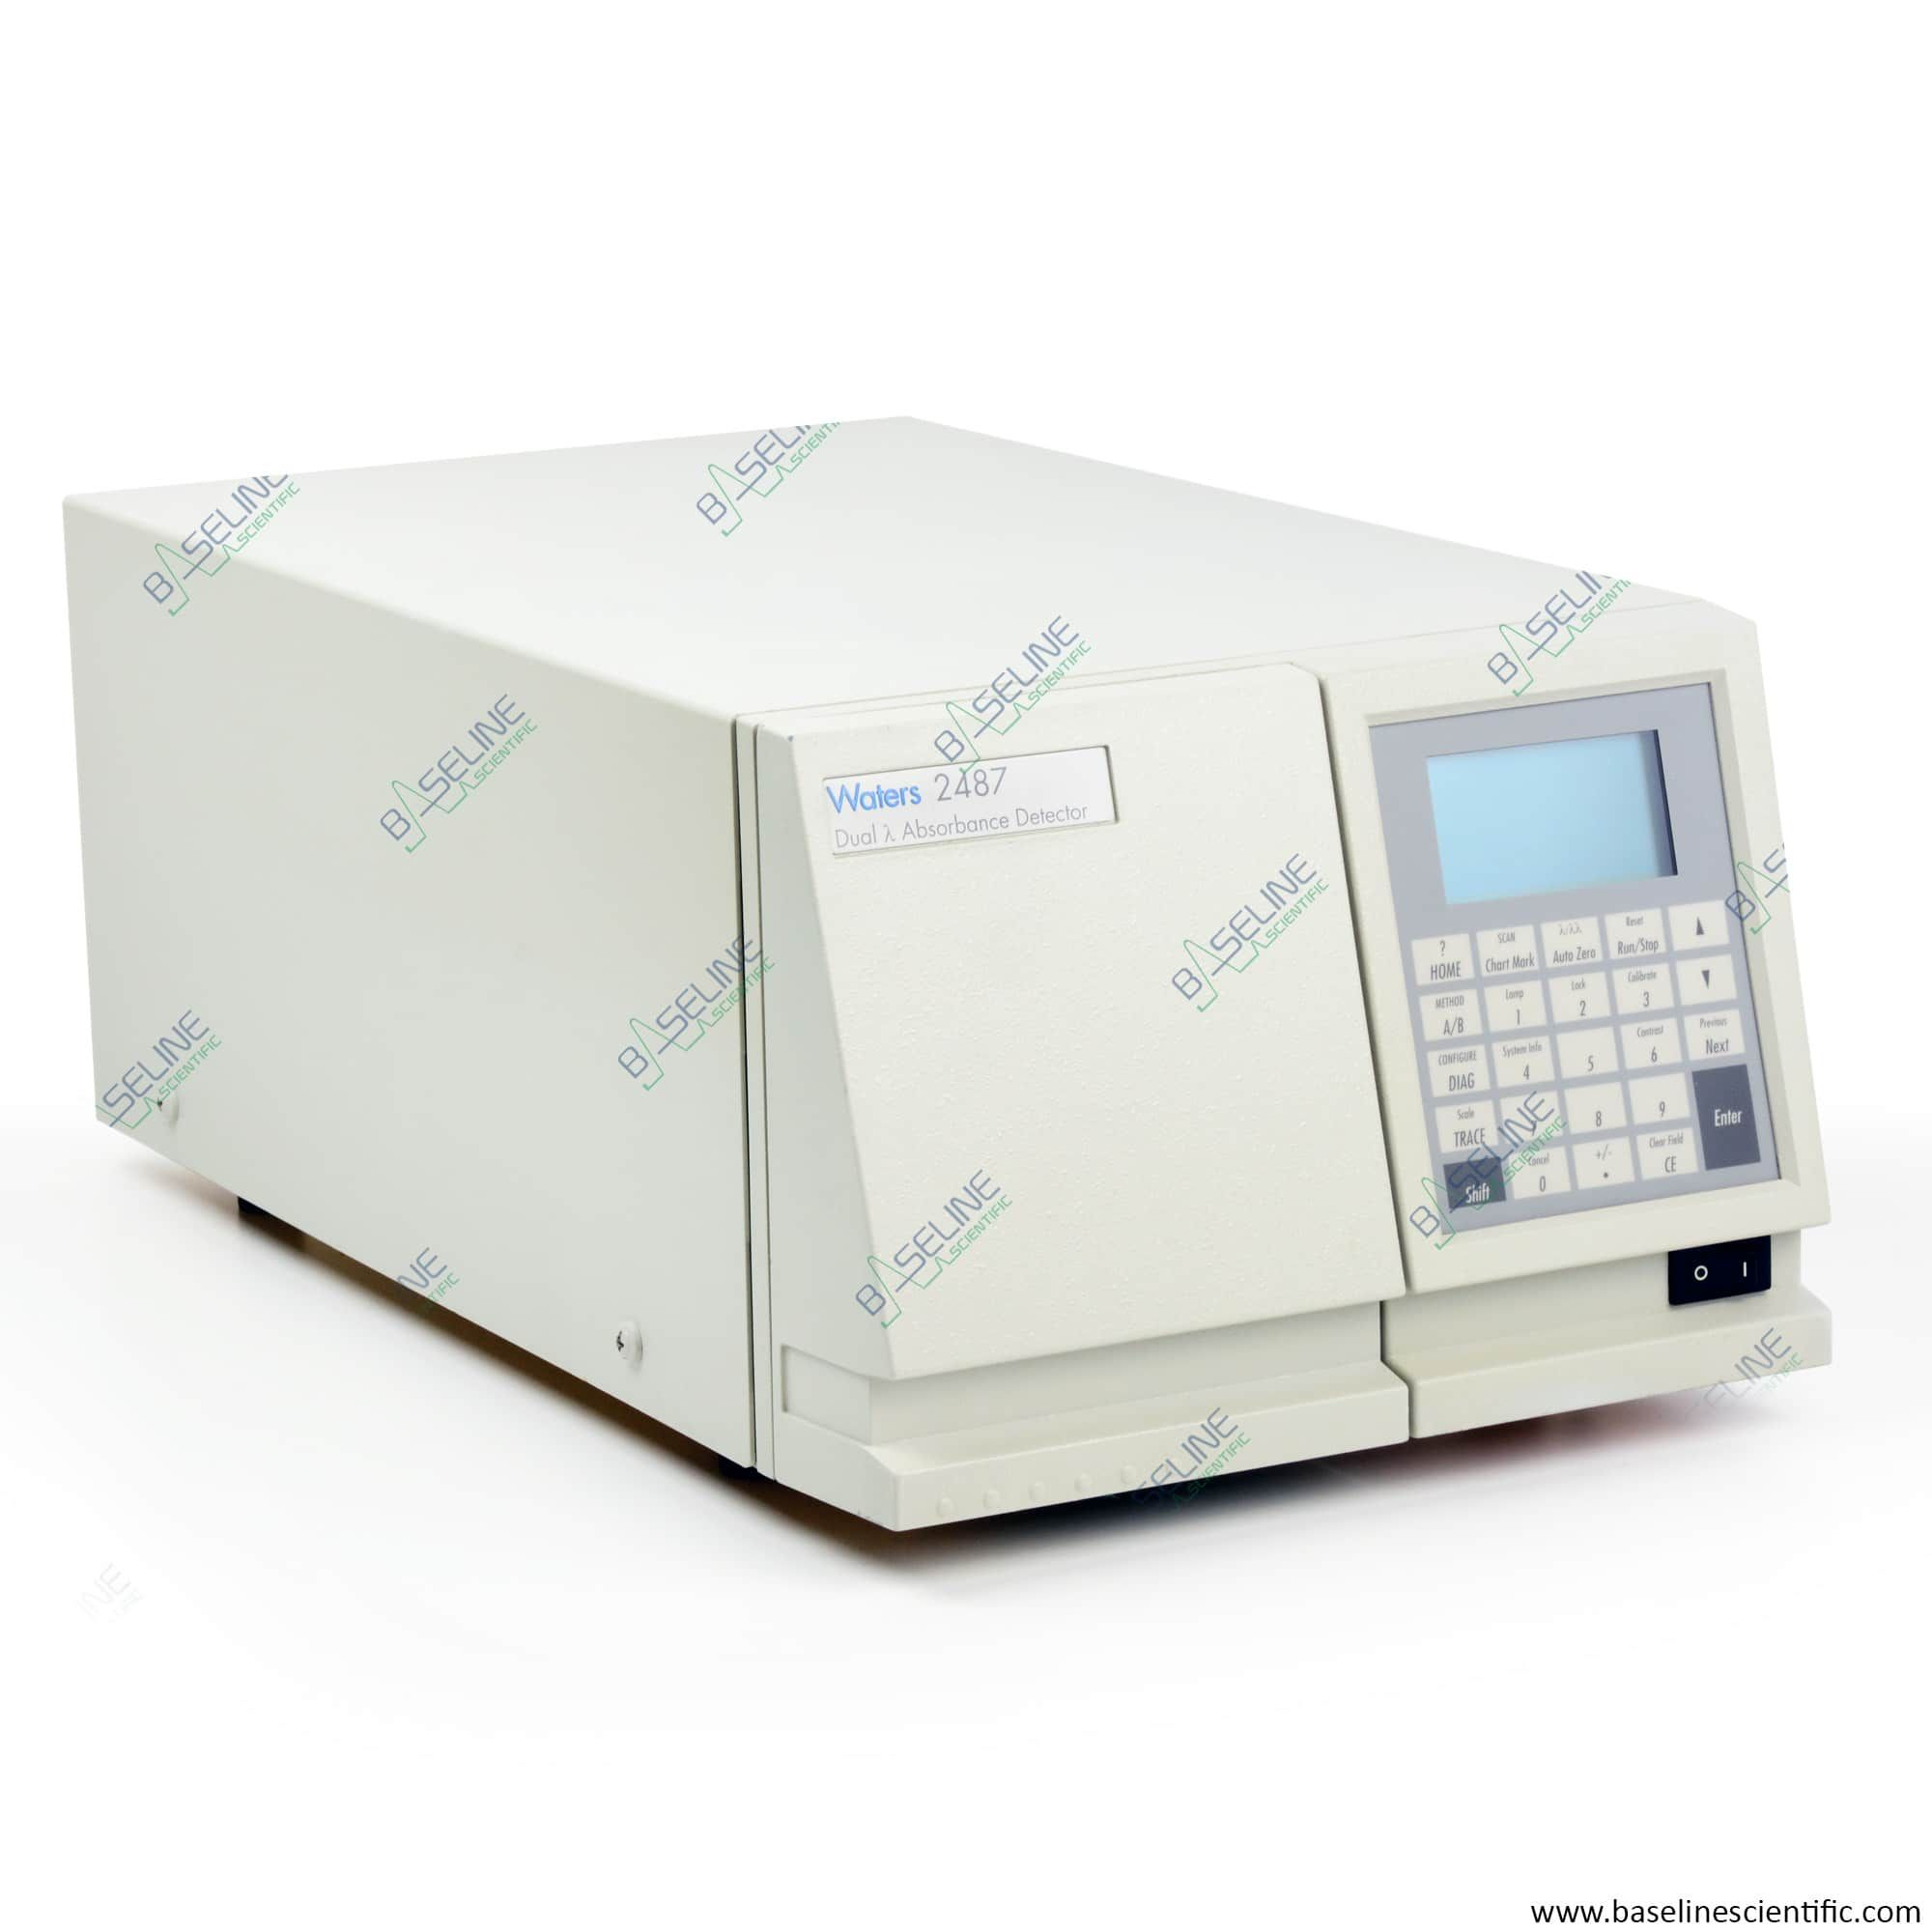 Refurbished Waters 2487 HPLC Dual Absorbance Detector with ONE YEAR WARRANTY